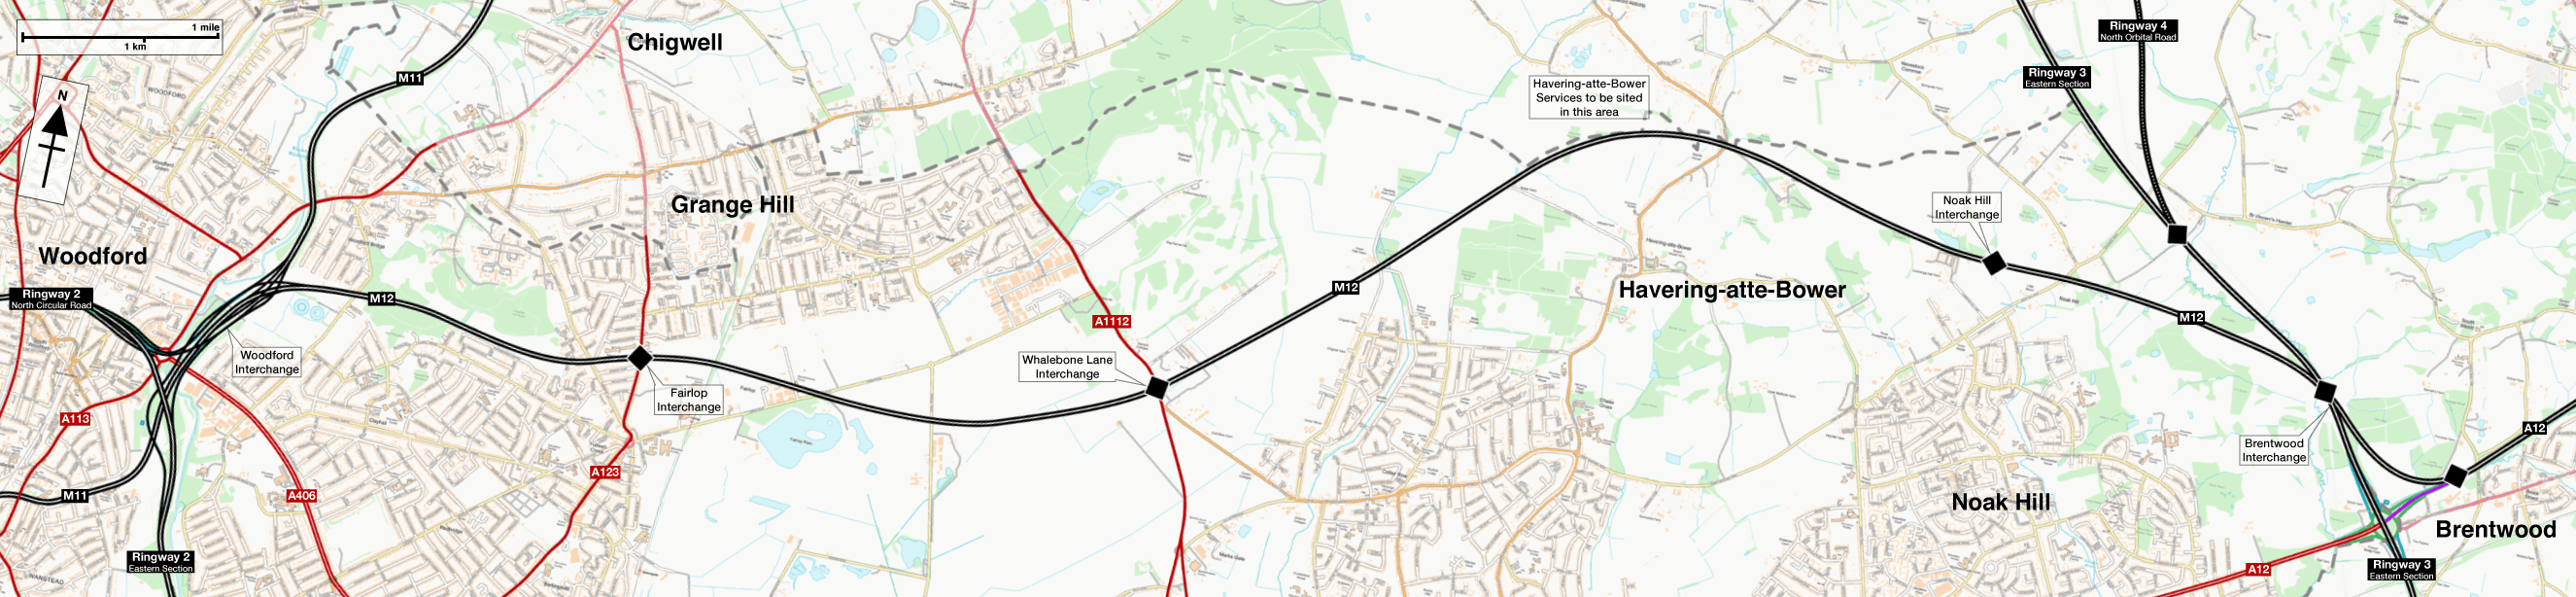 Map of the M12